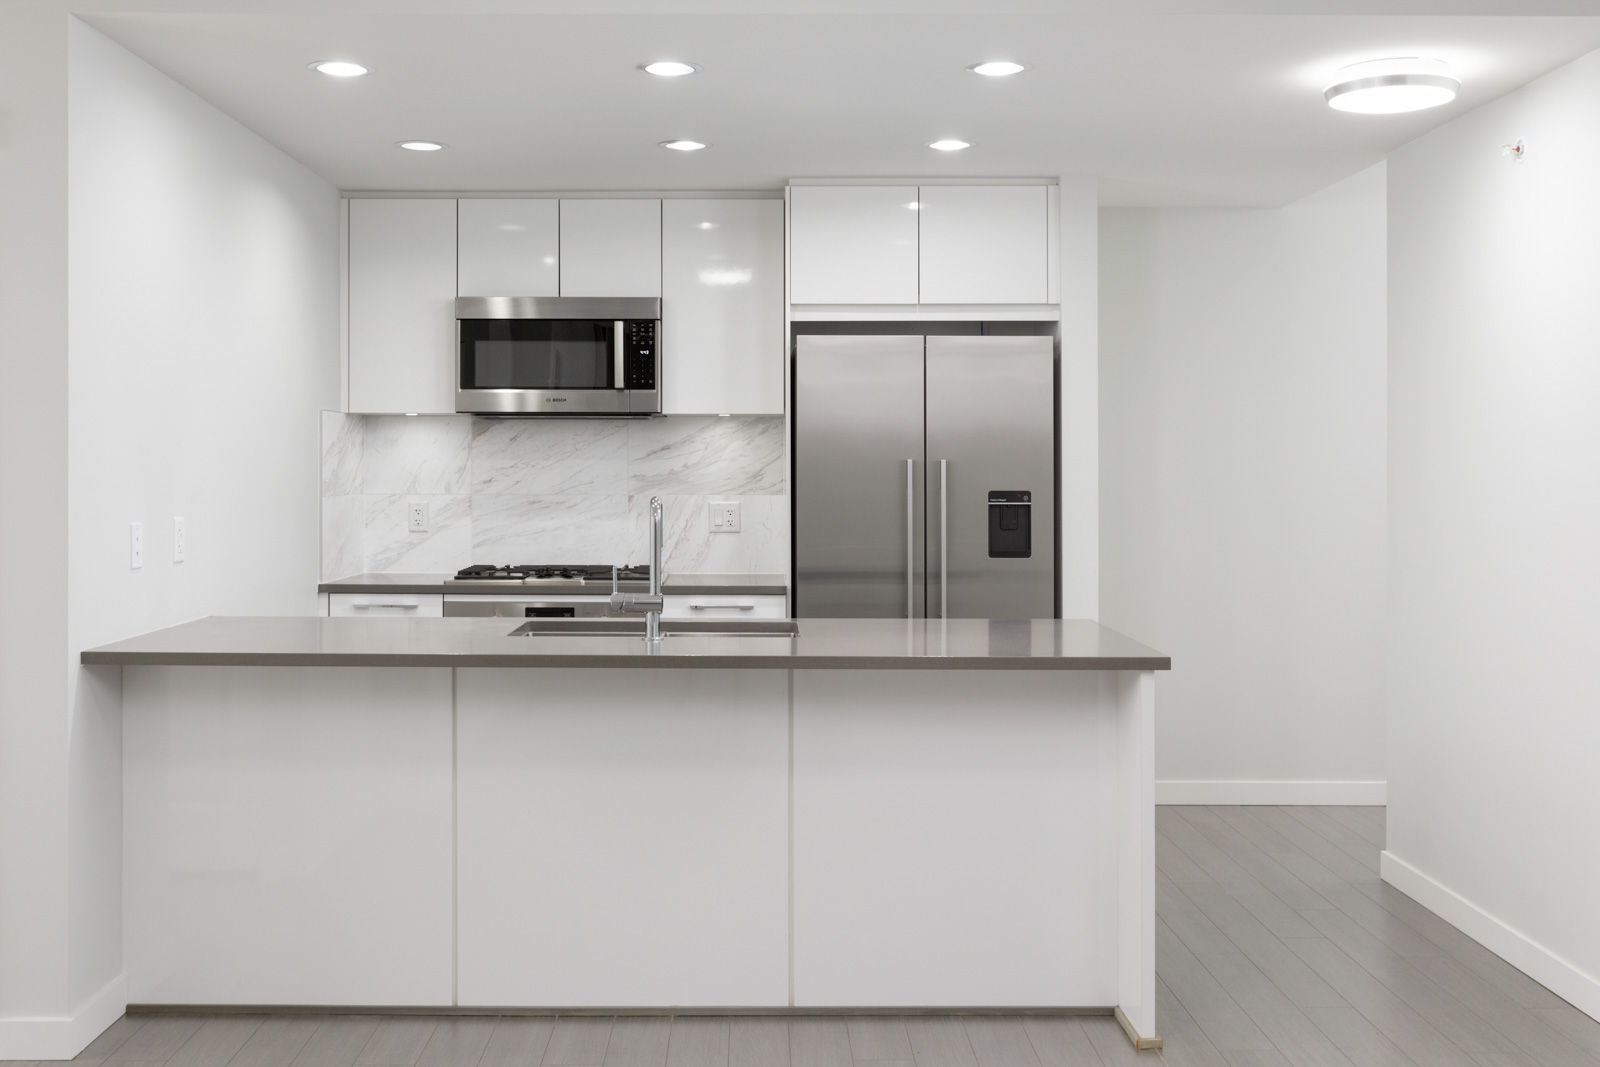 front view of kitchen in condo with with island in front and kitchen wall in back with stainless steel refrigerator on right and over the top microwave on left amid white cabinets